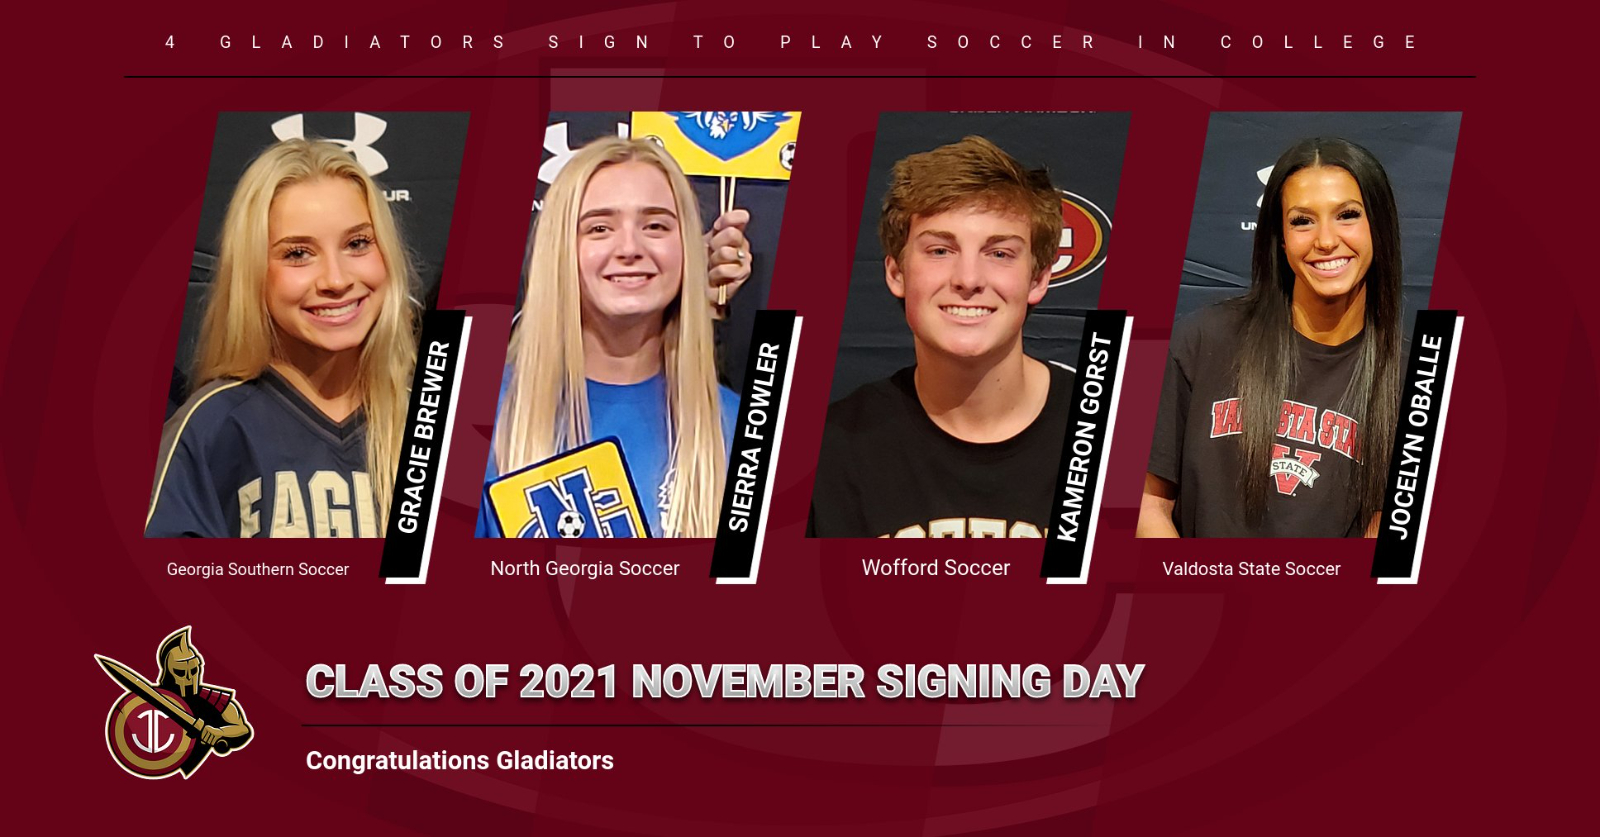 4 Gladiators sign to play College Soccer